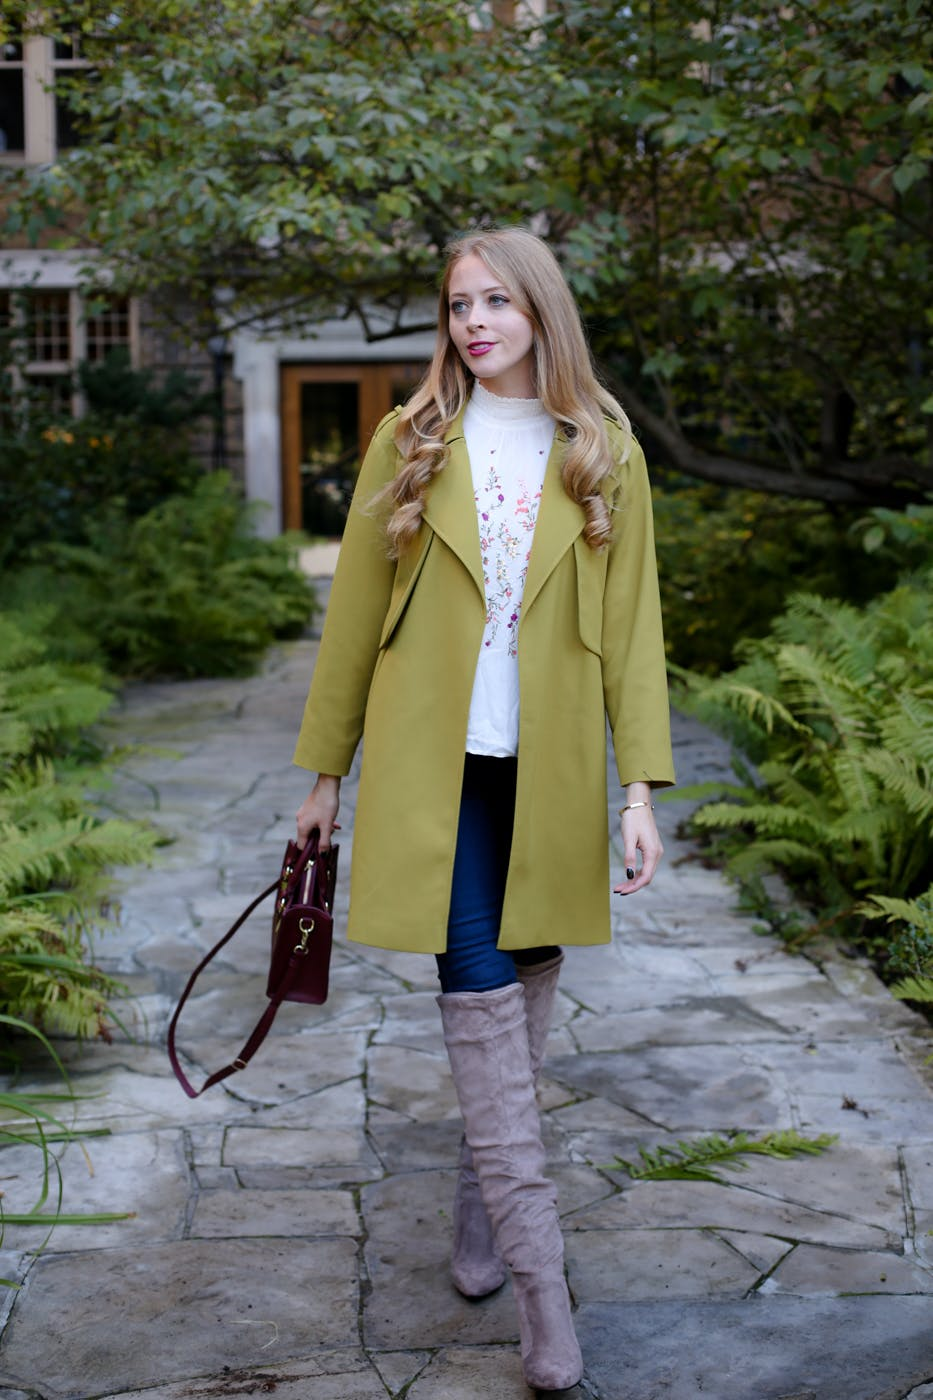 Green trench coat + over the knee boots